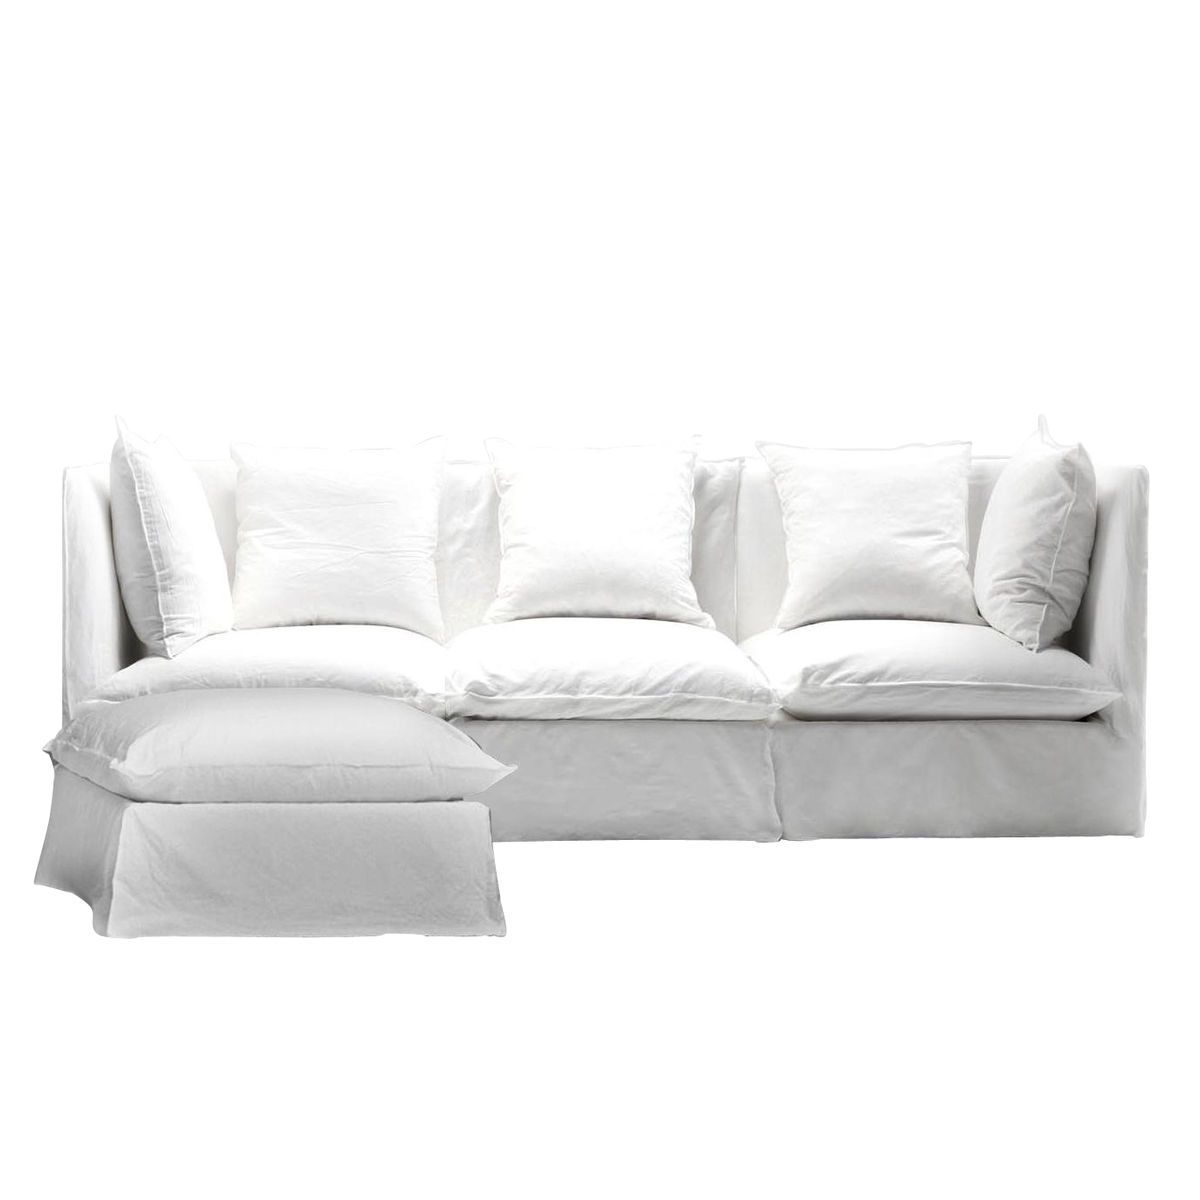 ghost sofa ottoman gervasoni paola navone. Black Bedroom Furniture Sets. Home Design Ideas